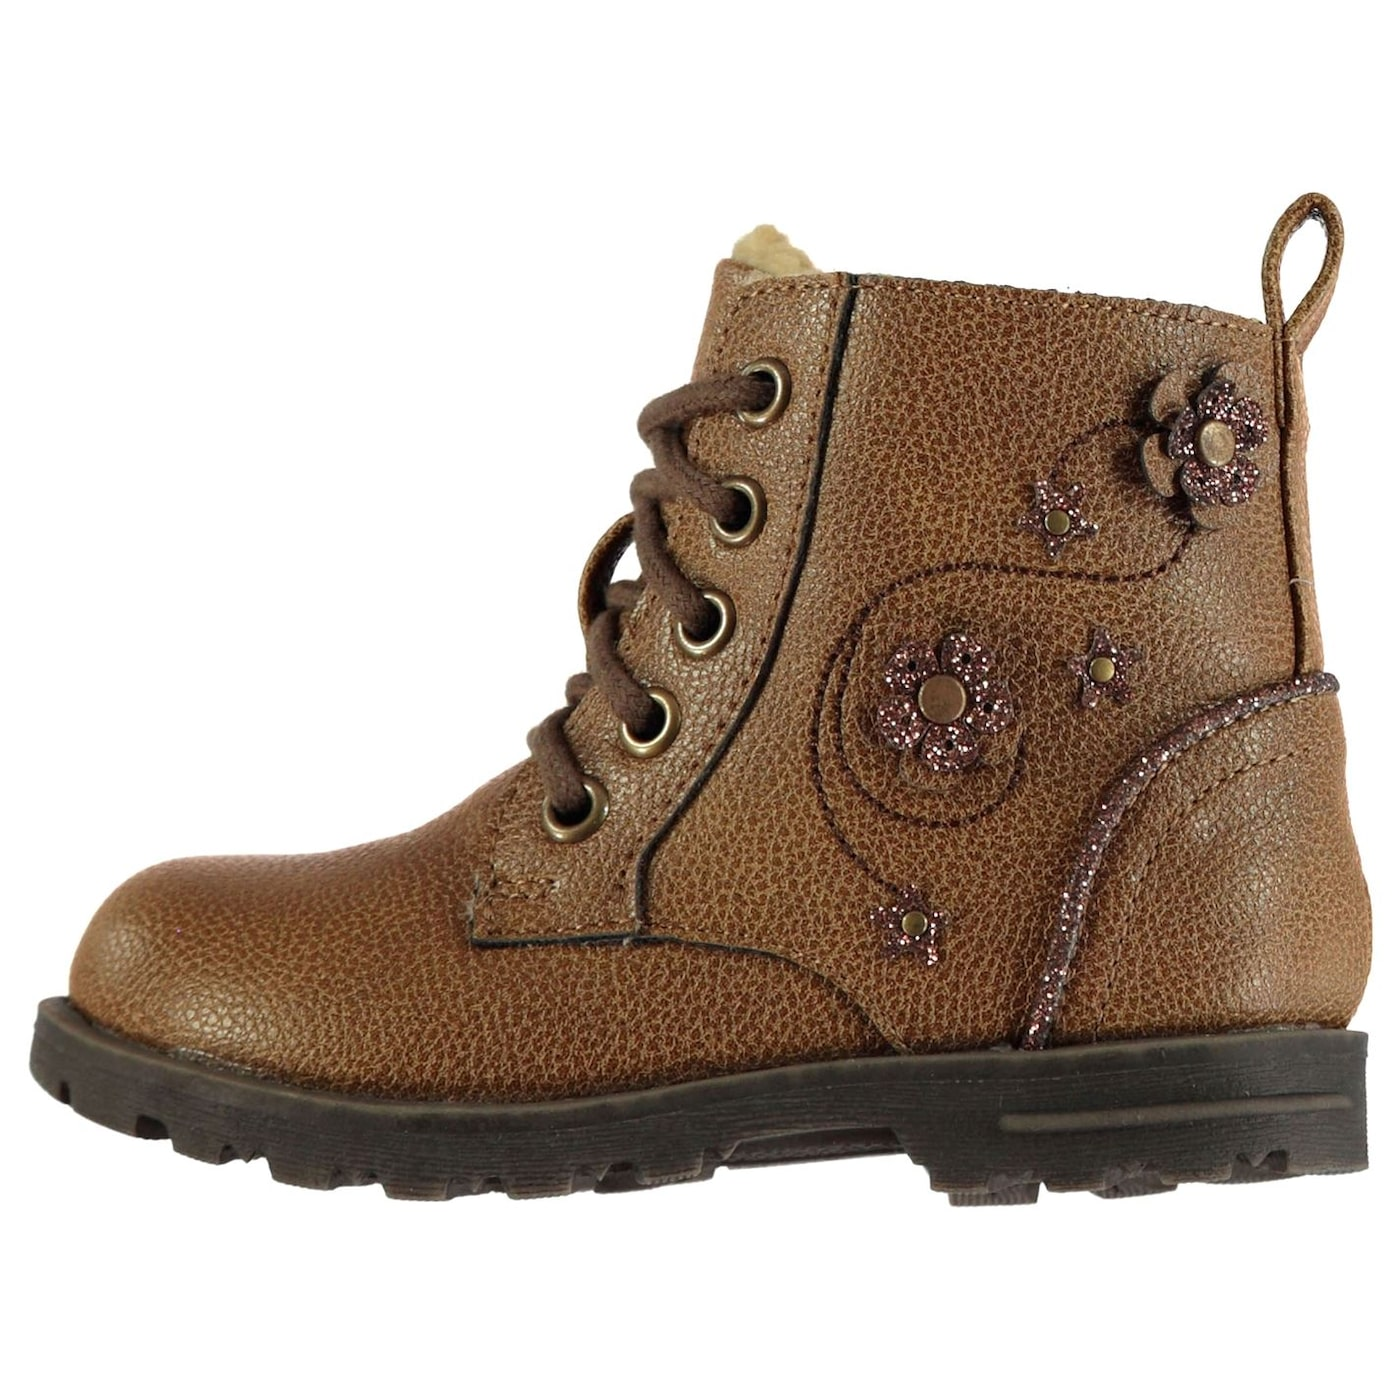 Miso Milly Rugged Infant Girls Boots